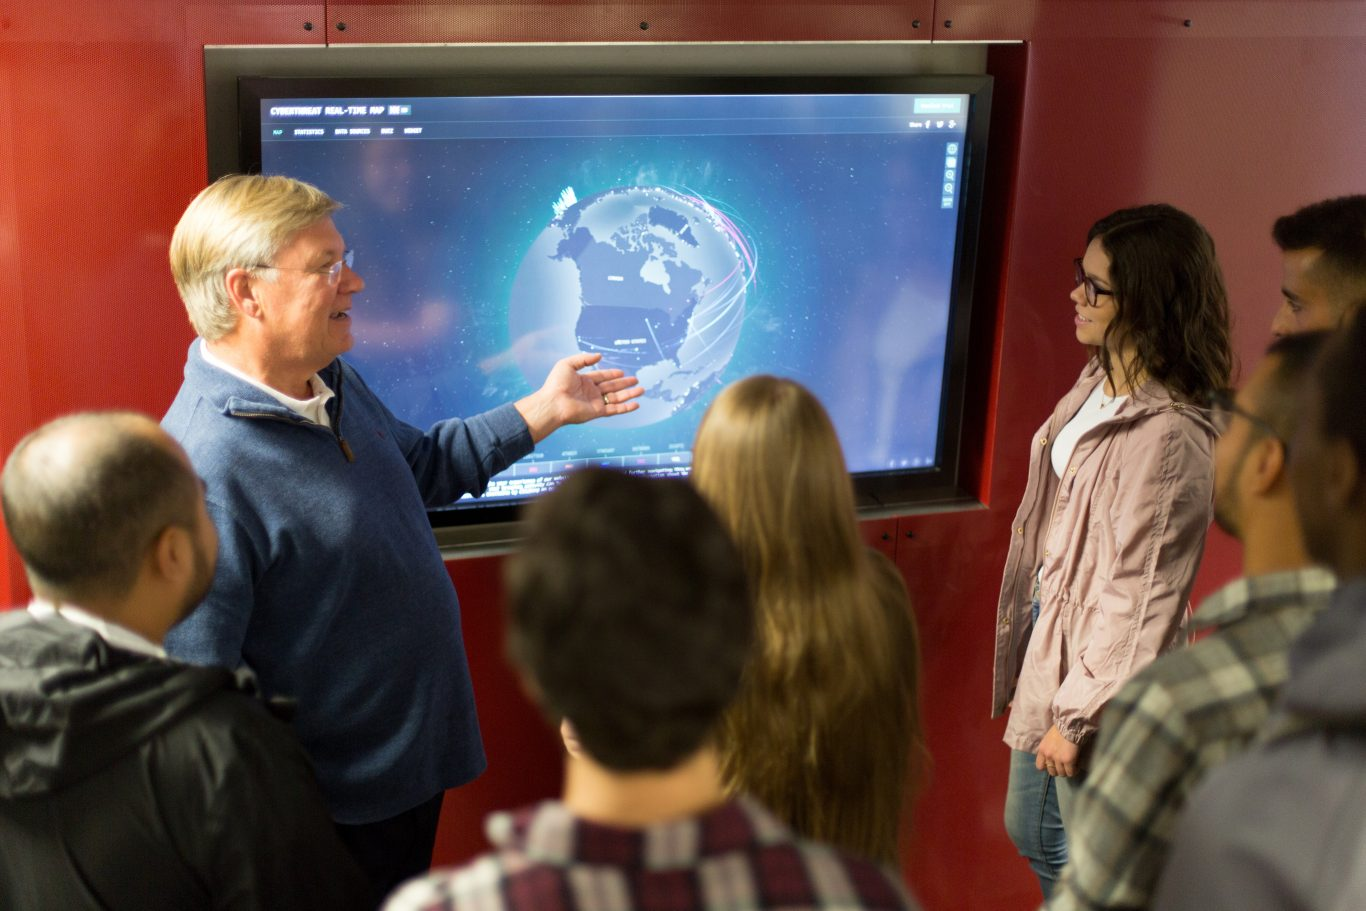 Professor and students at a display screen